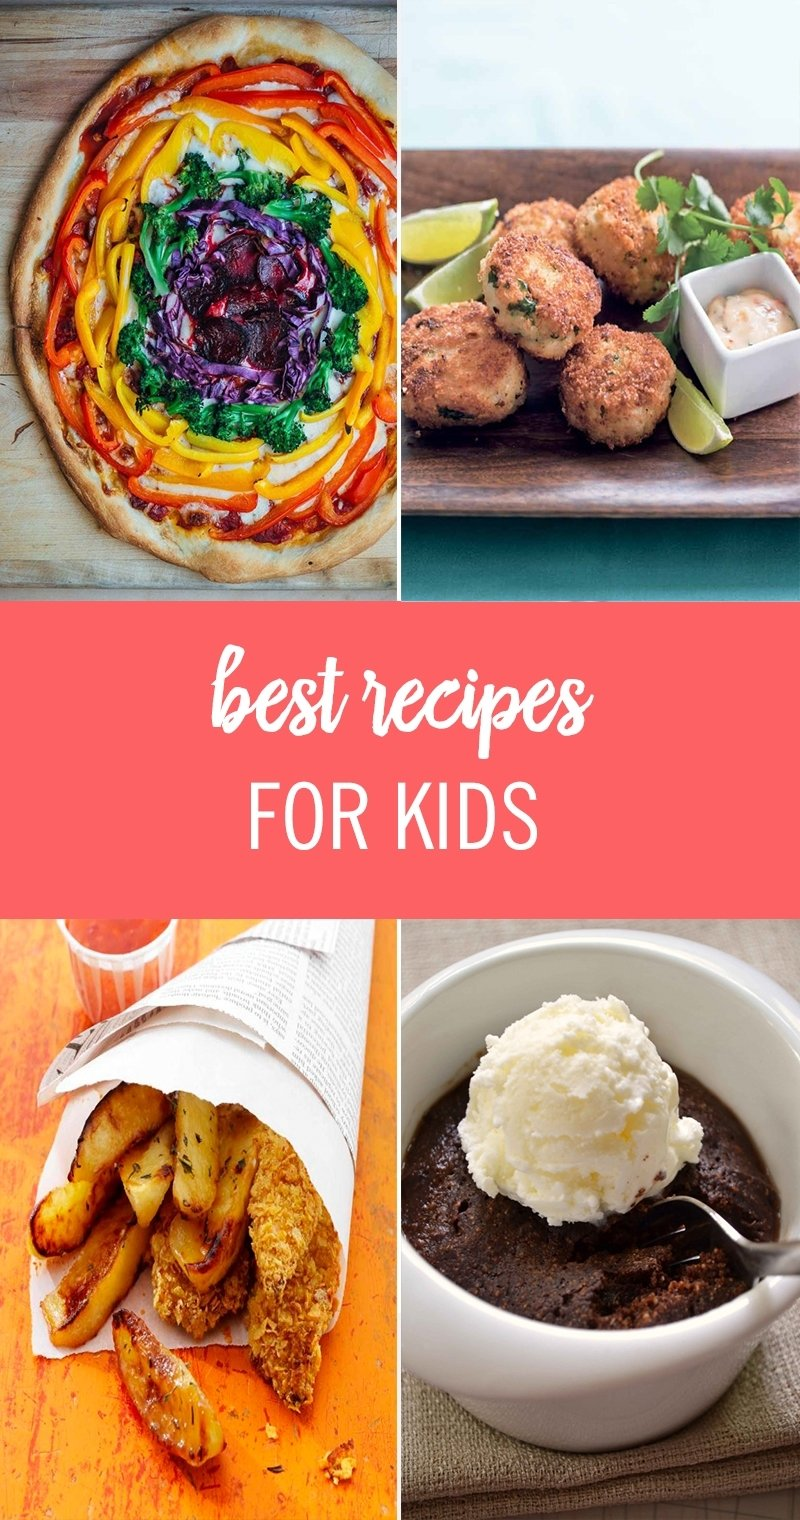 10 Fashionable Lunch Ideas For Picky Kids cooking for kids 50 best recipes for kids and picky eaters 26